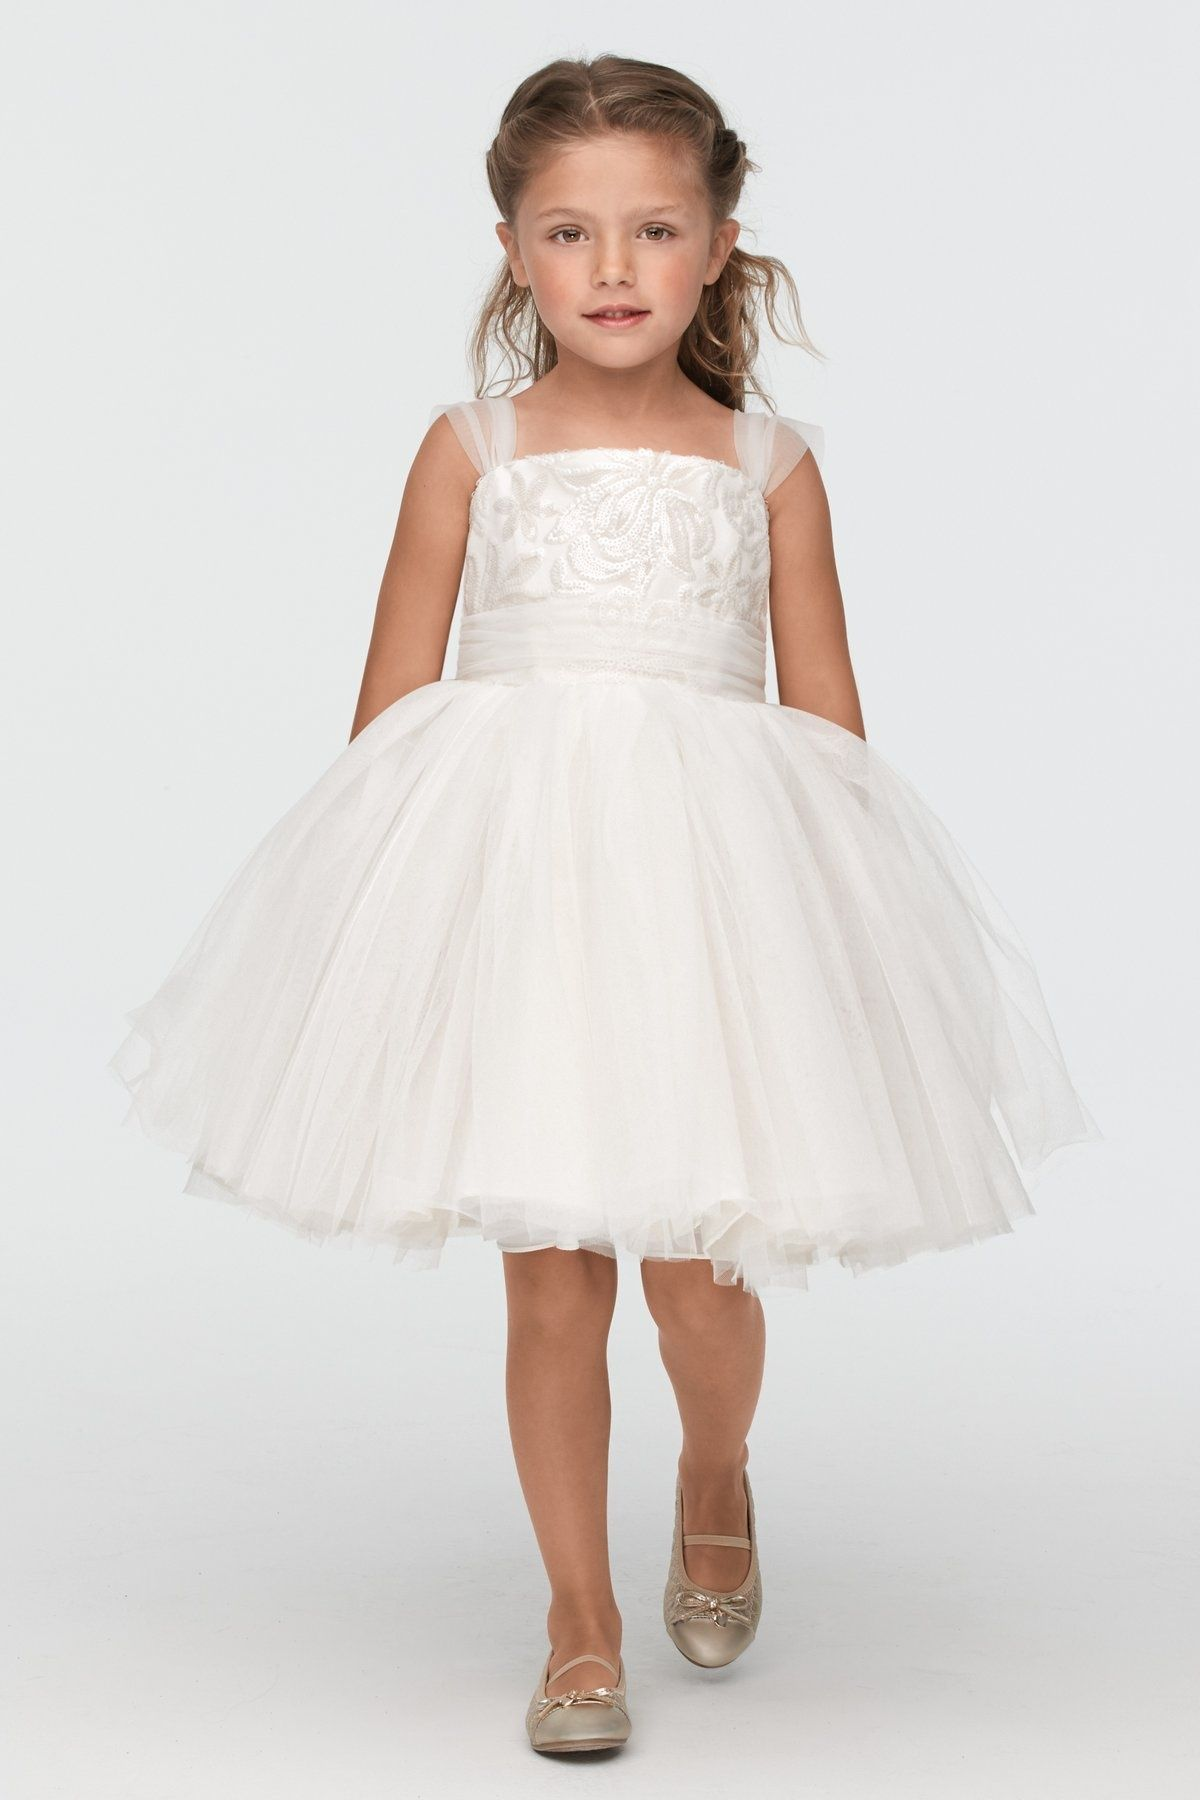 Beach wedding flower girl dresses  Seahorse flower girl collection This gorgeous little collection of